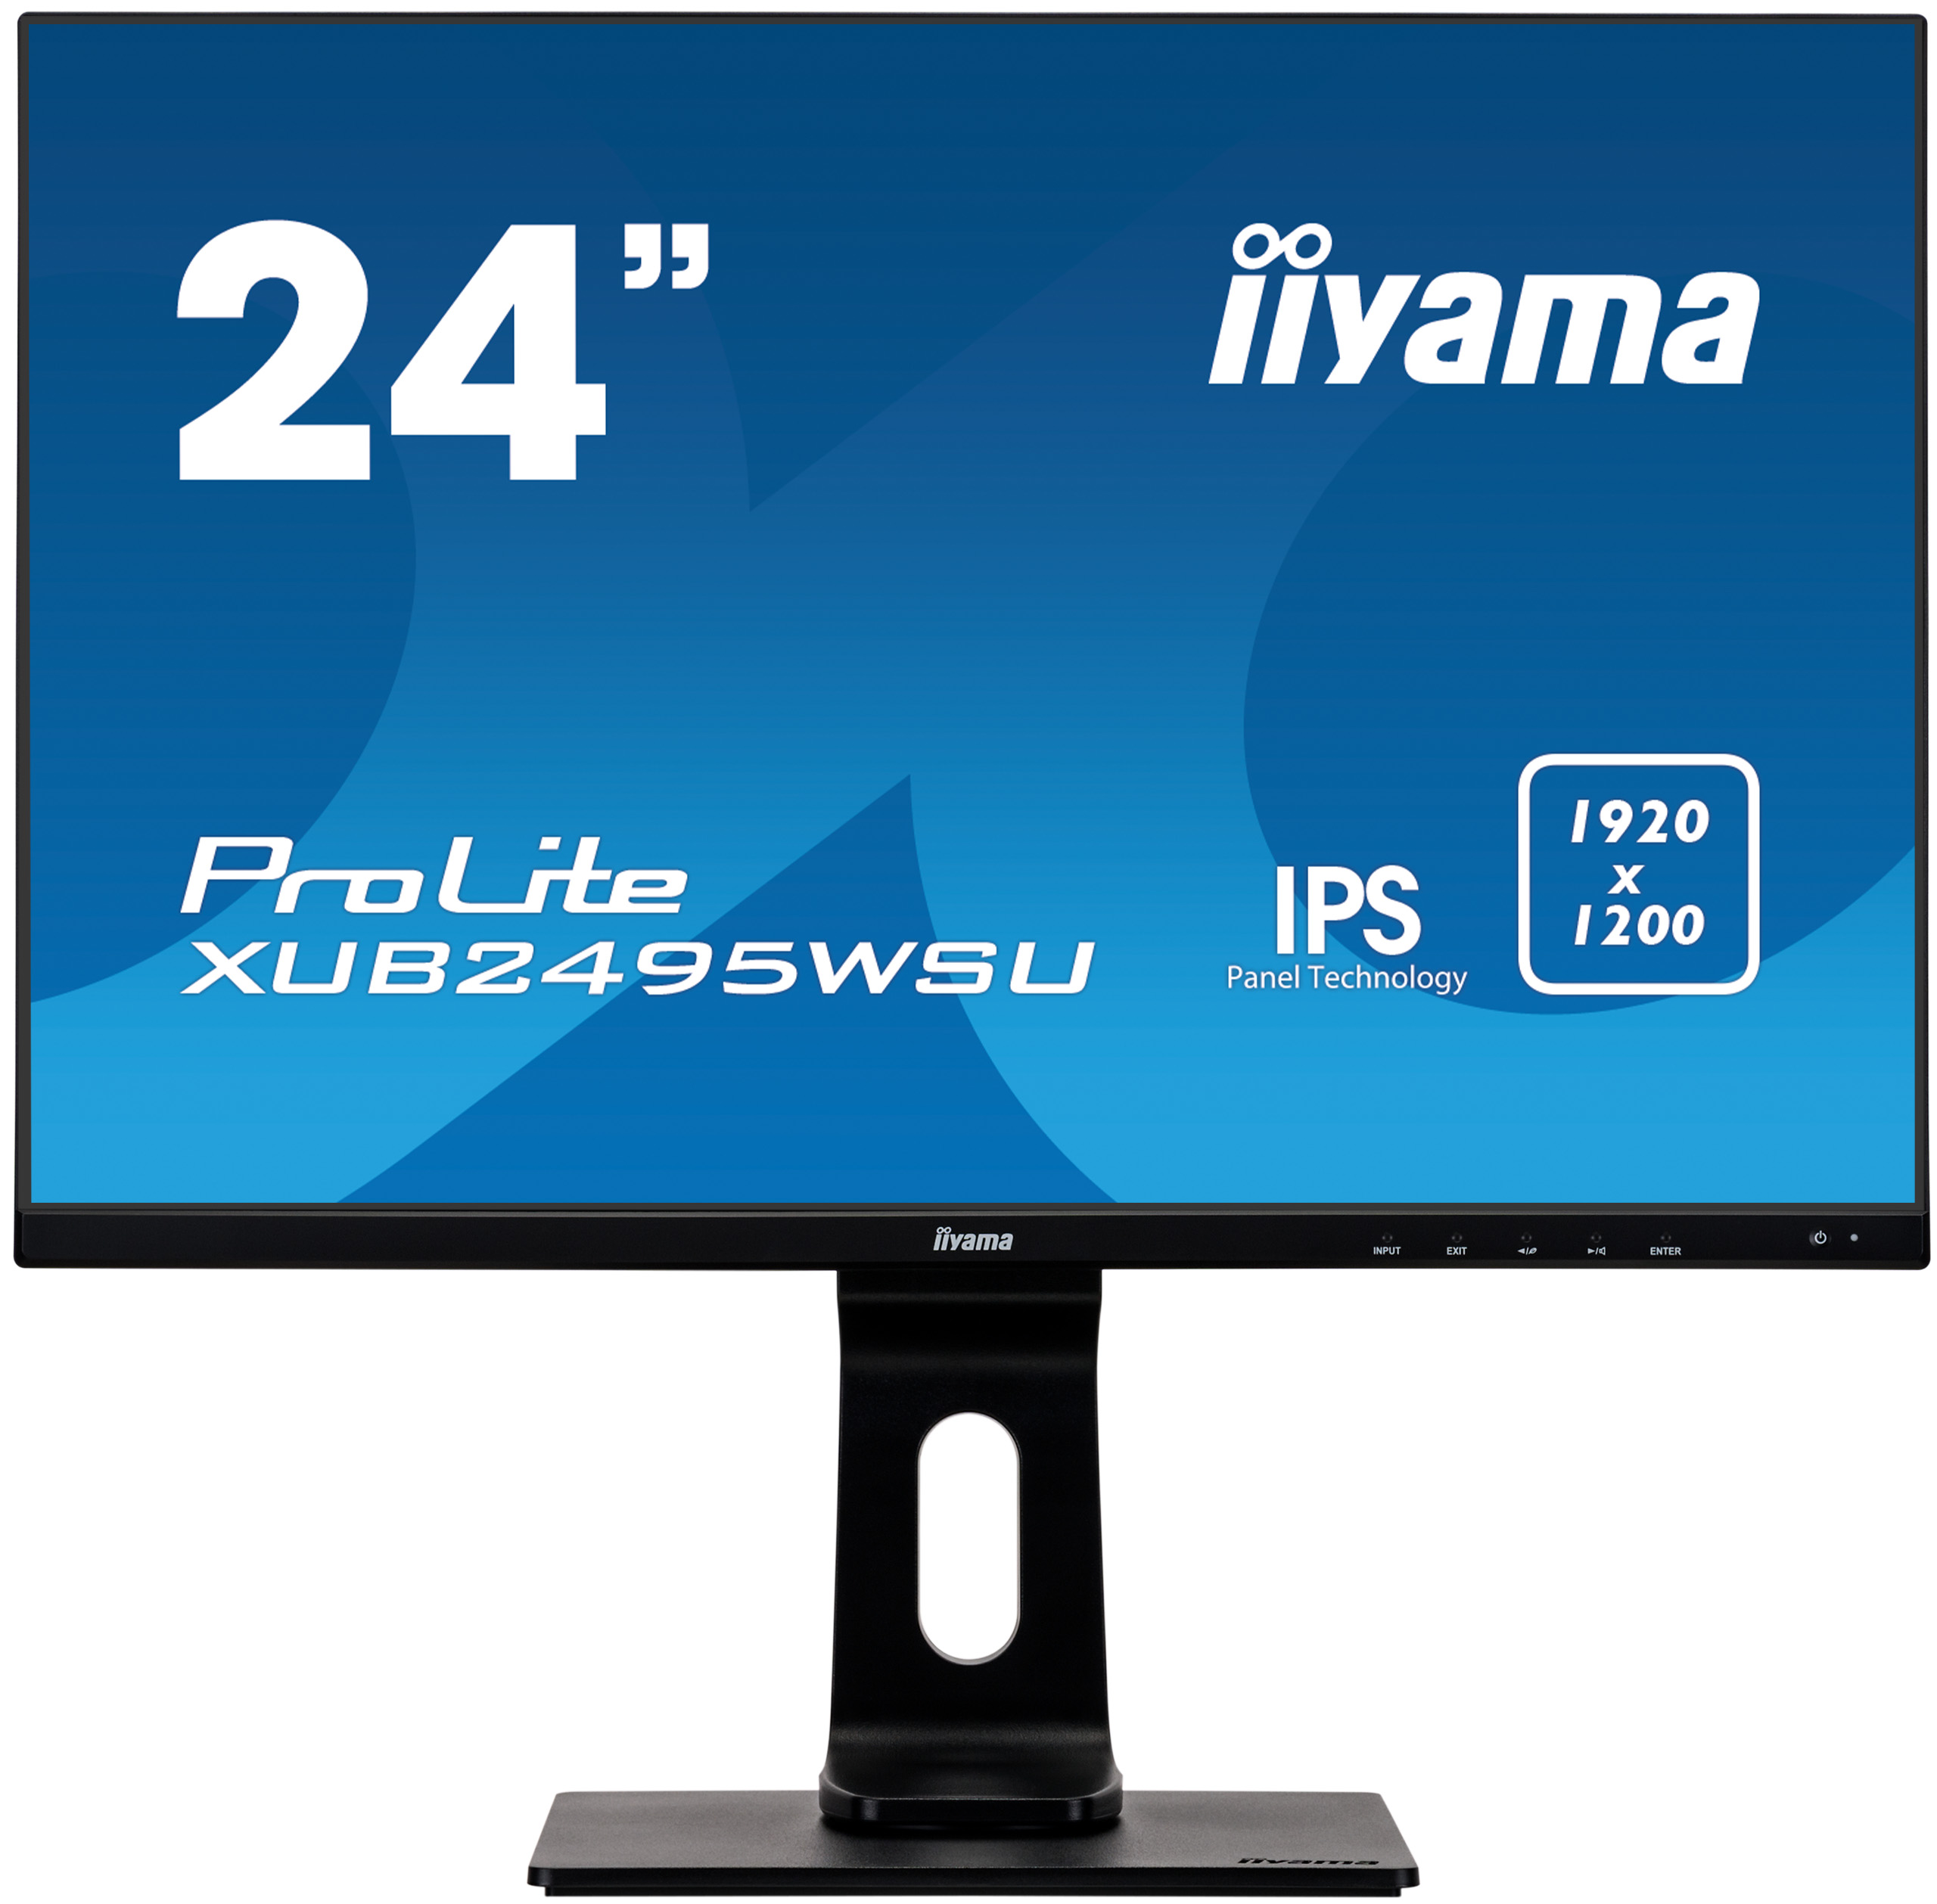 24'' iiyama XUB2495WSU-B1: IPS, 1920x1200, 16:10, 300cd/m2, 5ms, VGA, HDMI, DP, height, pivot, černý